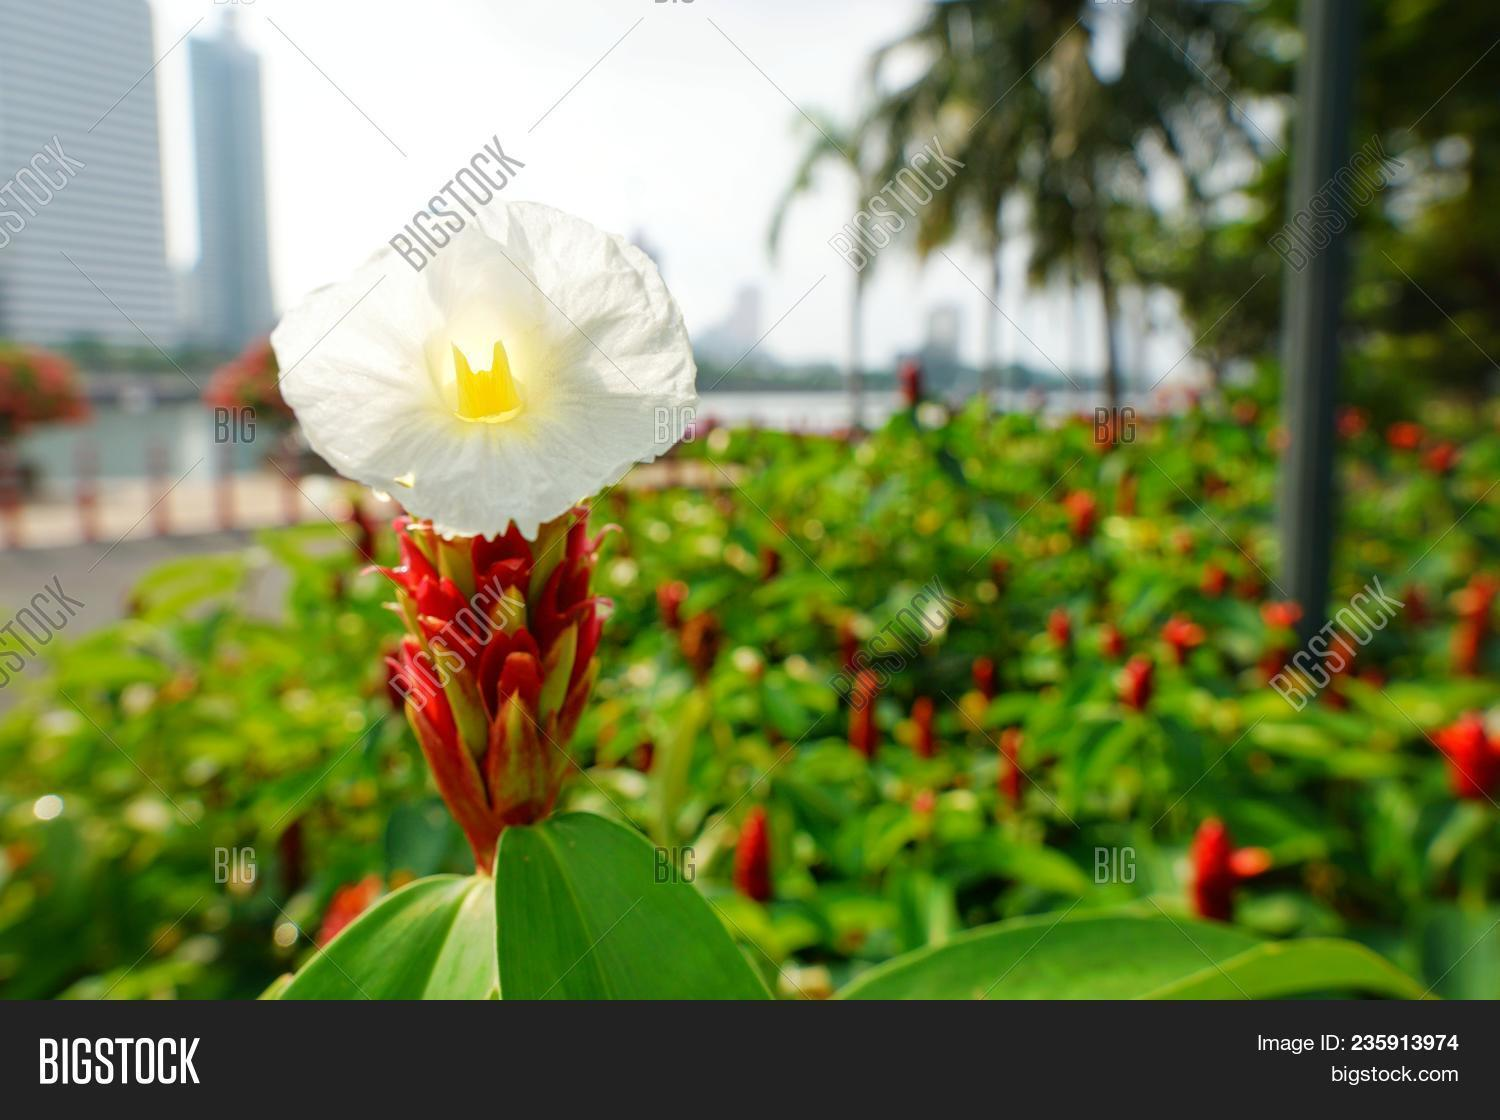 Peace Lily Flower Image Photo Free Trial Bigstock